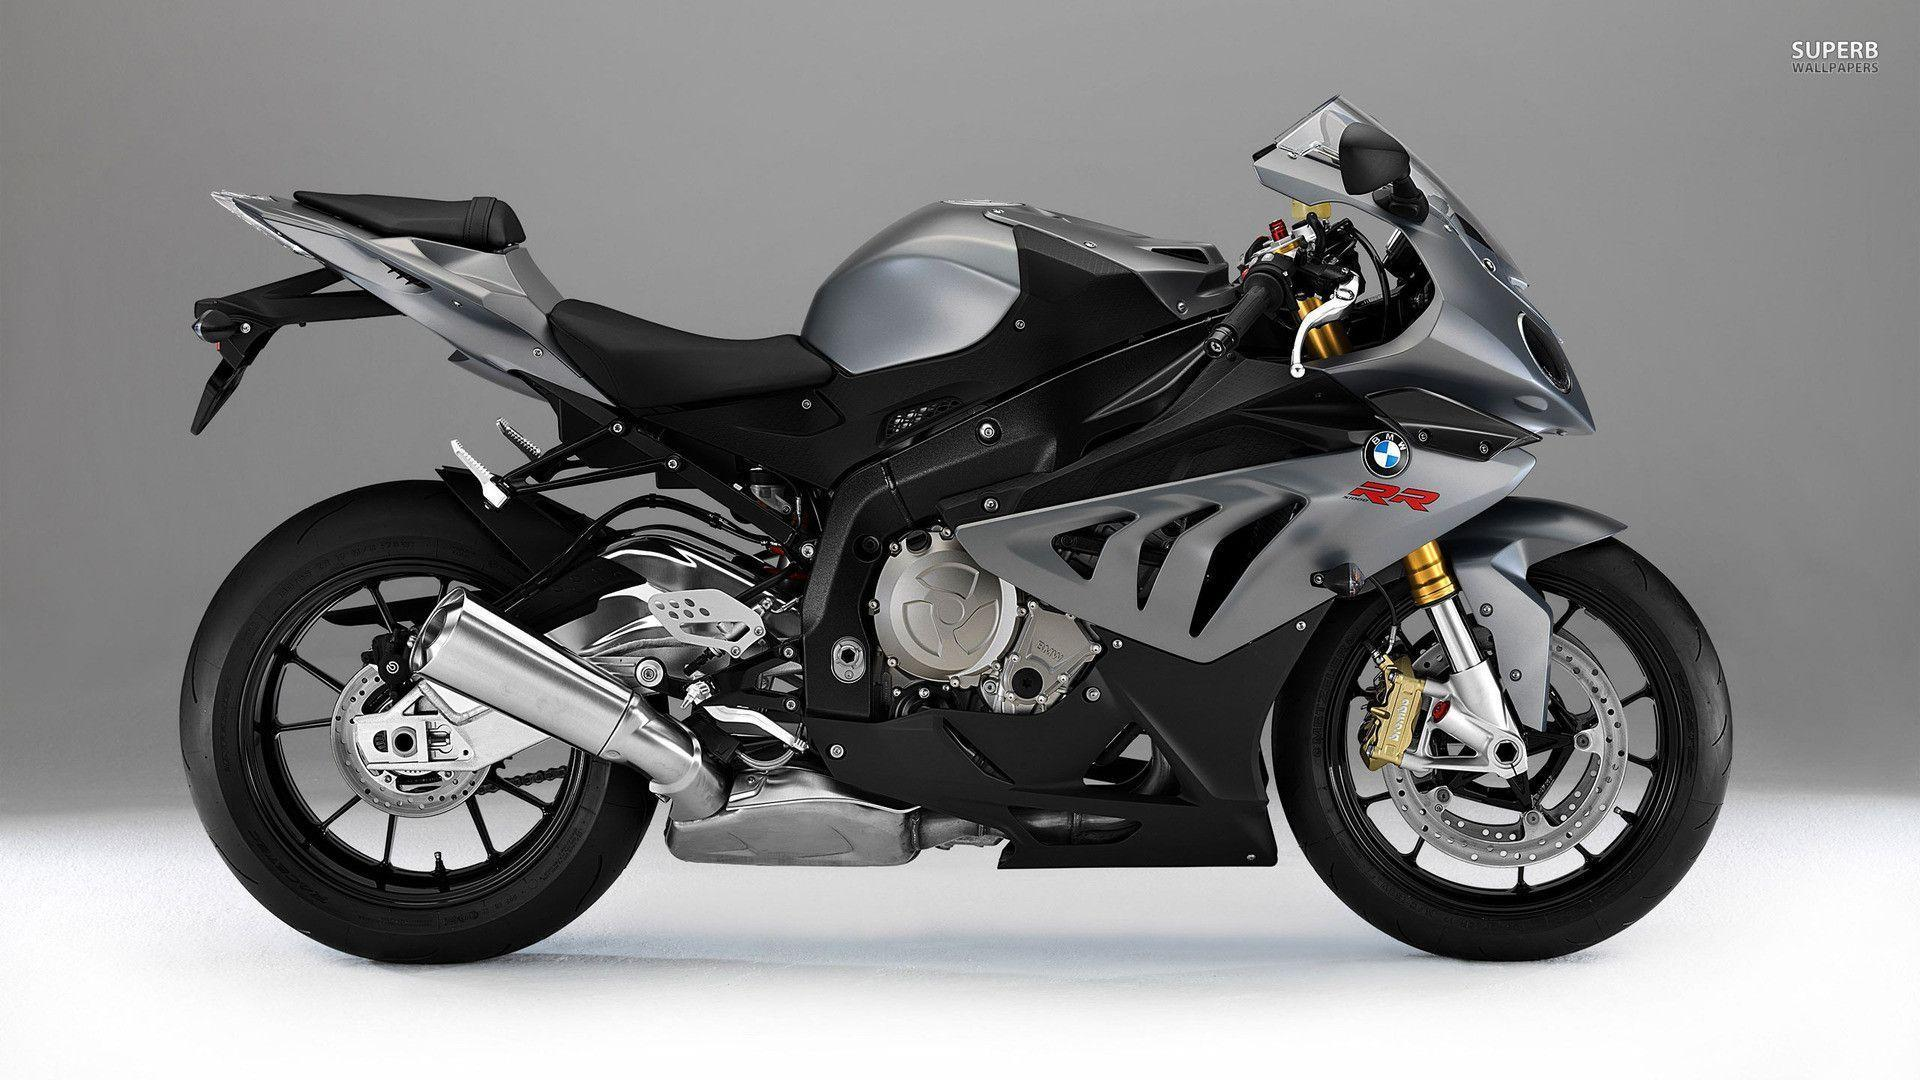 New BMW S 1000 RR Black Wallpapers (117 Wallpapers